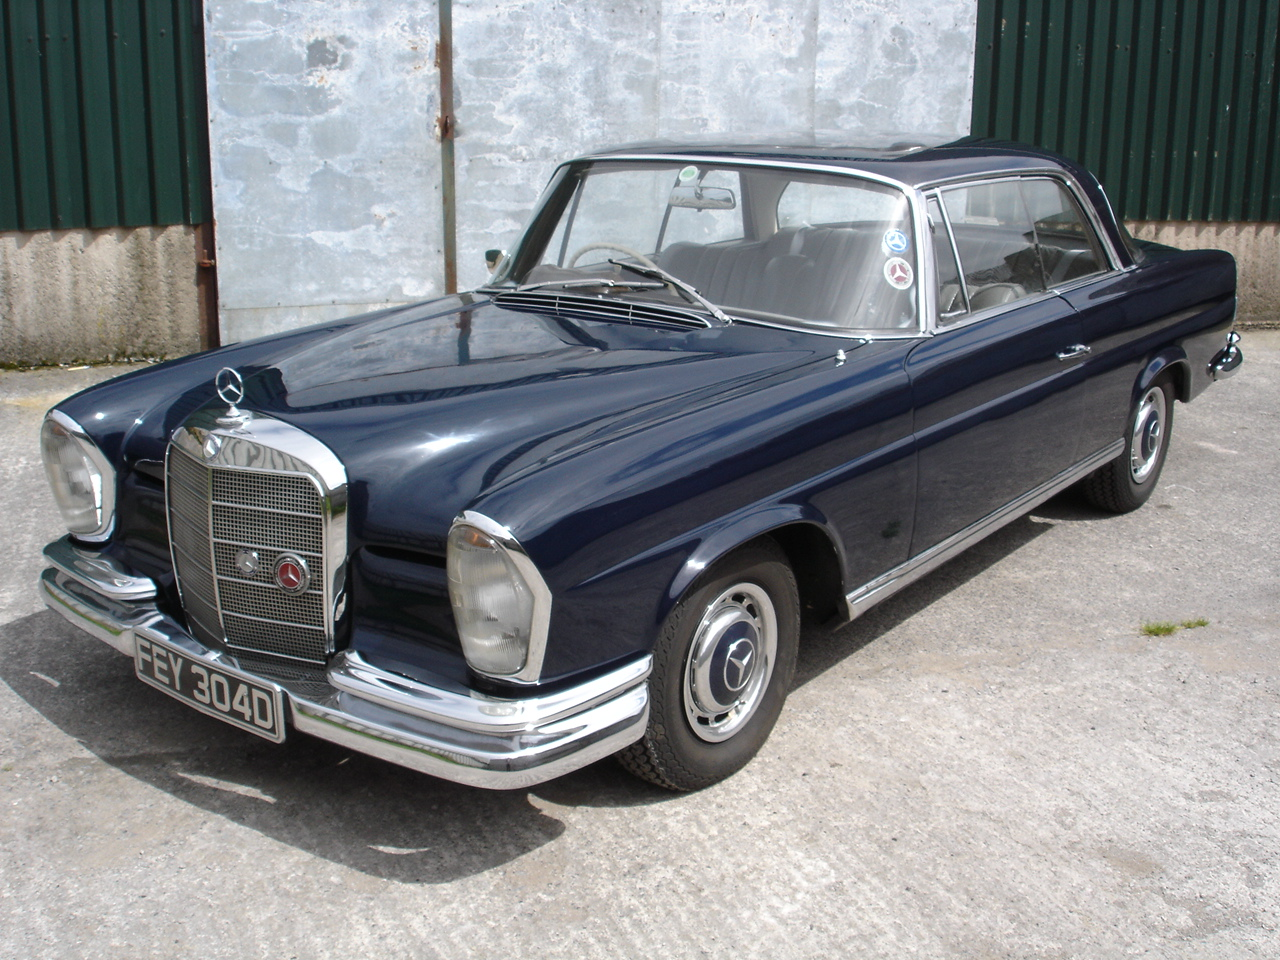 220seb Coupe 22 Litre 6 Cyl 1966d Cheshire Classic Benz Mercedes 230ce Fuel Filter This Is One Of The Most Desired Models 1960s Beloved Film Stars And Very Wealthy When New A Lasting Style Icon Which Shows